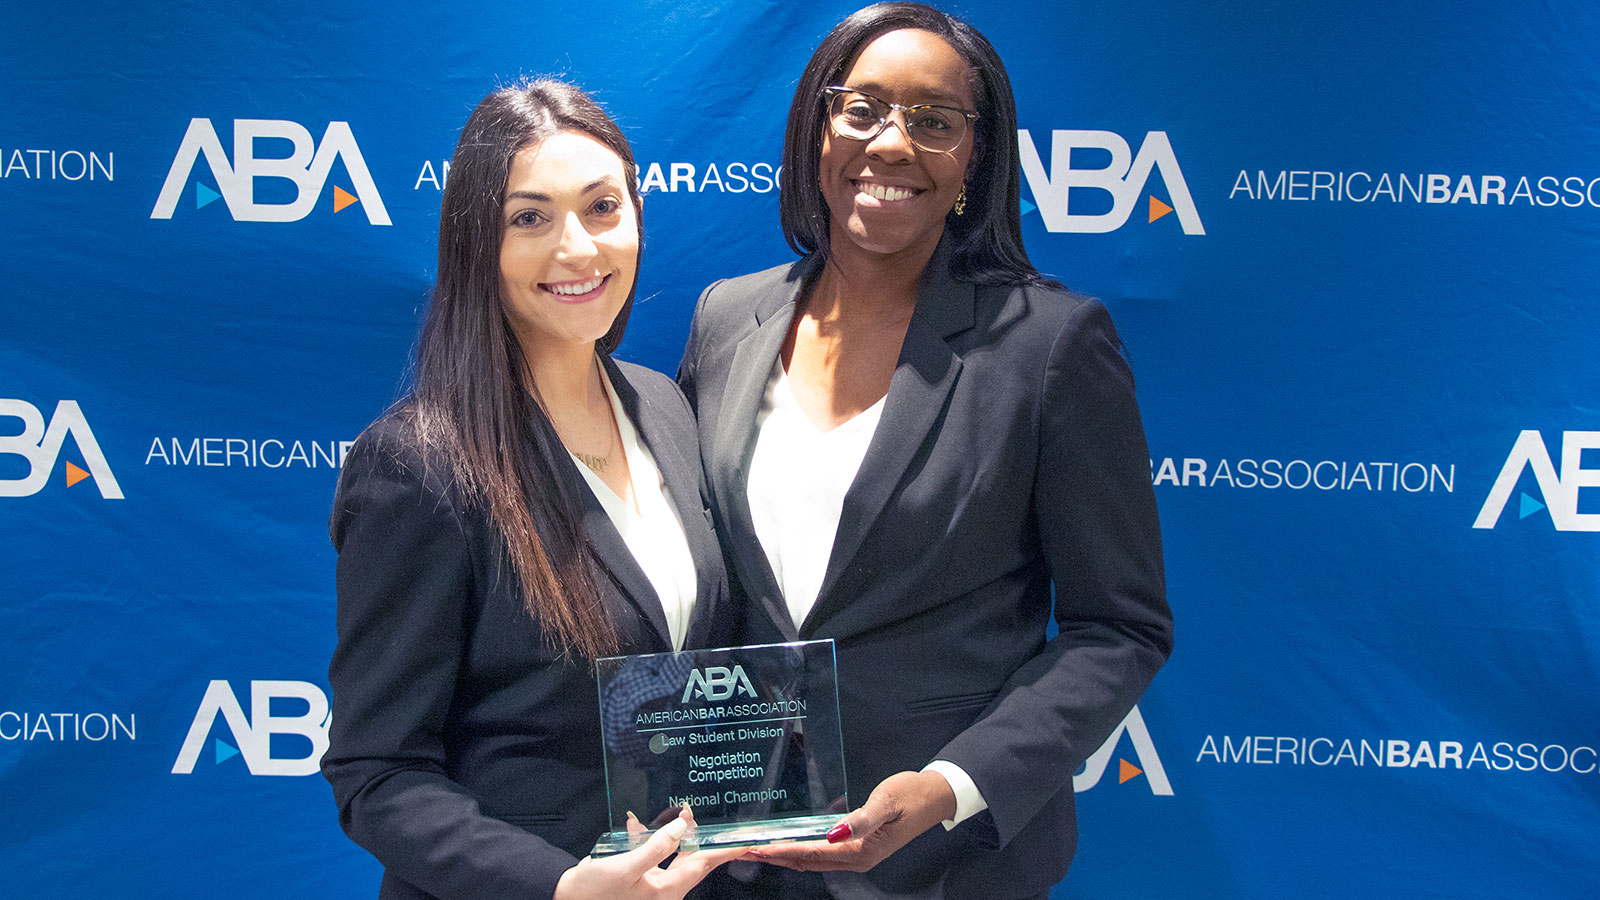 ABA Negotiation Competition Winners